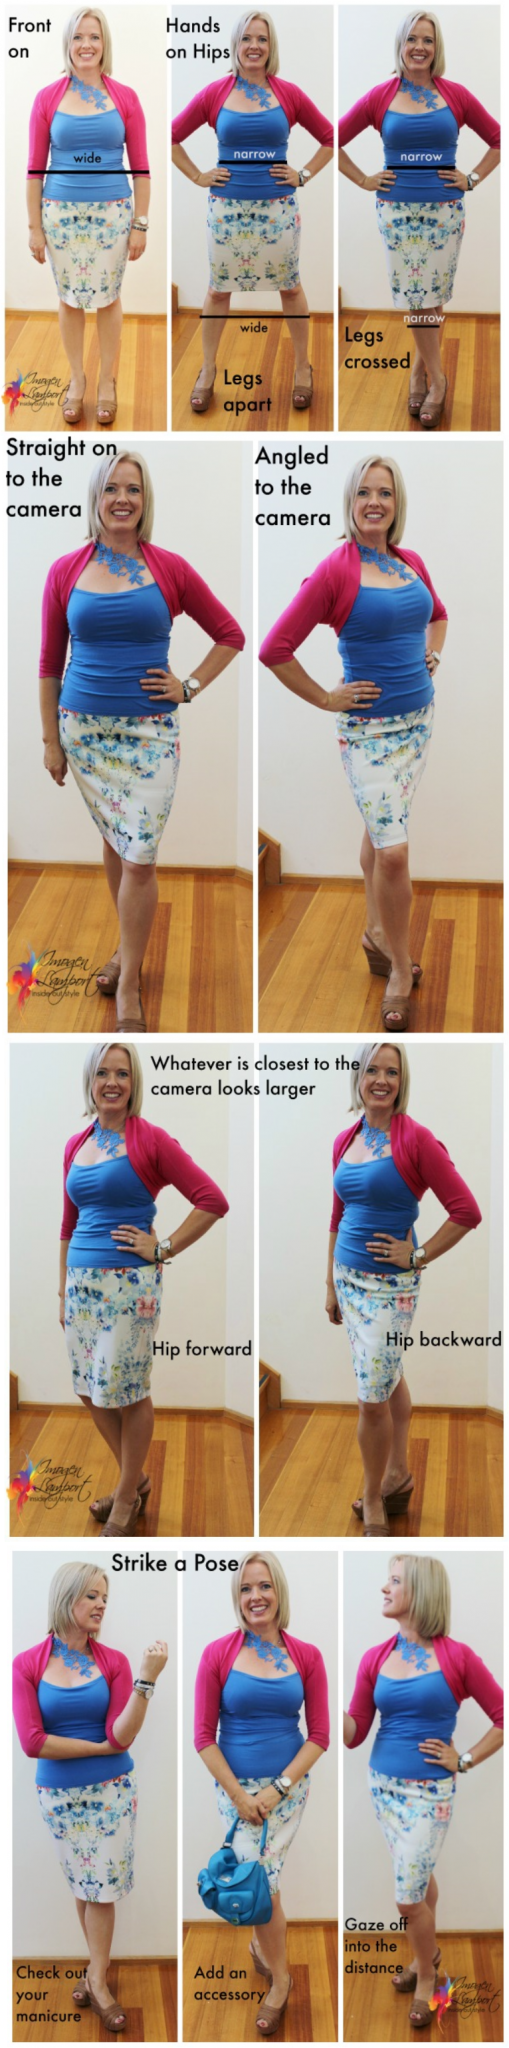 how to look slimmer in a selfie